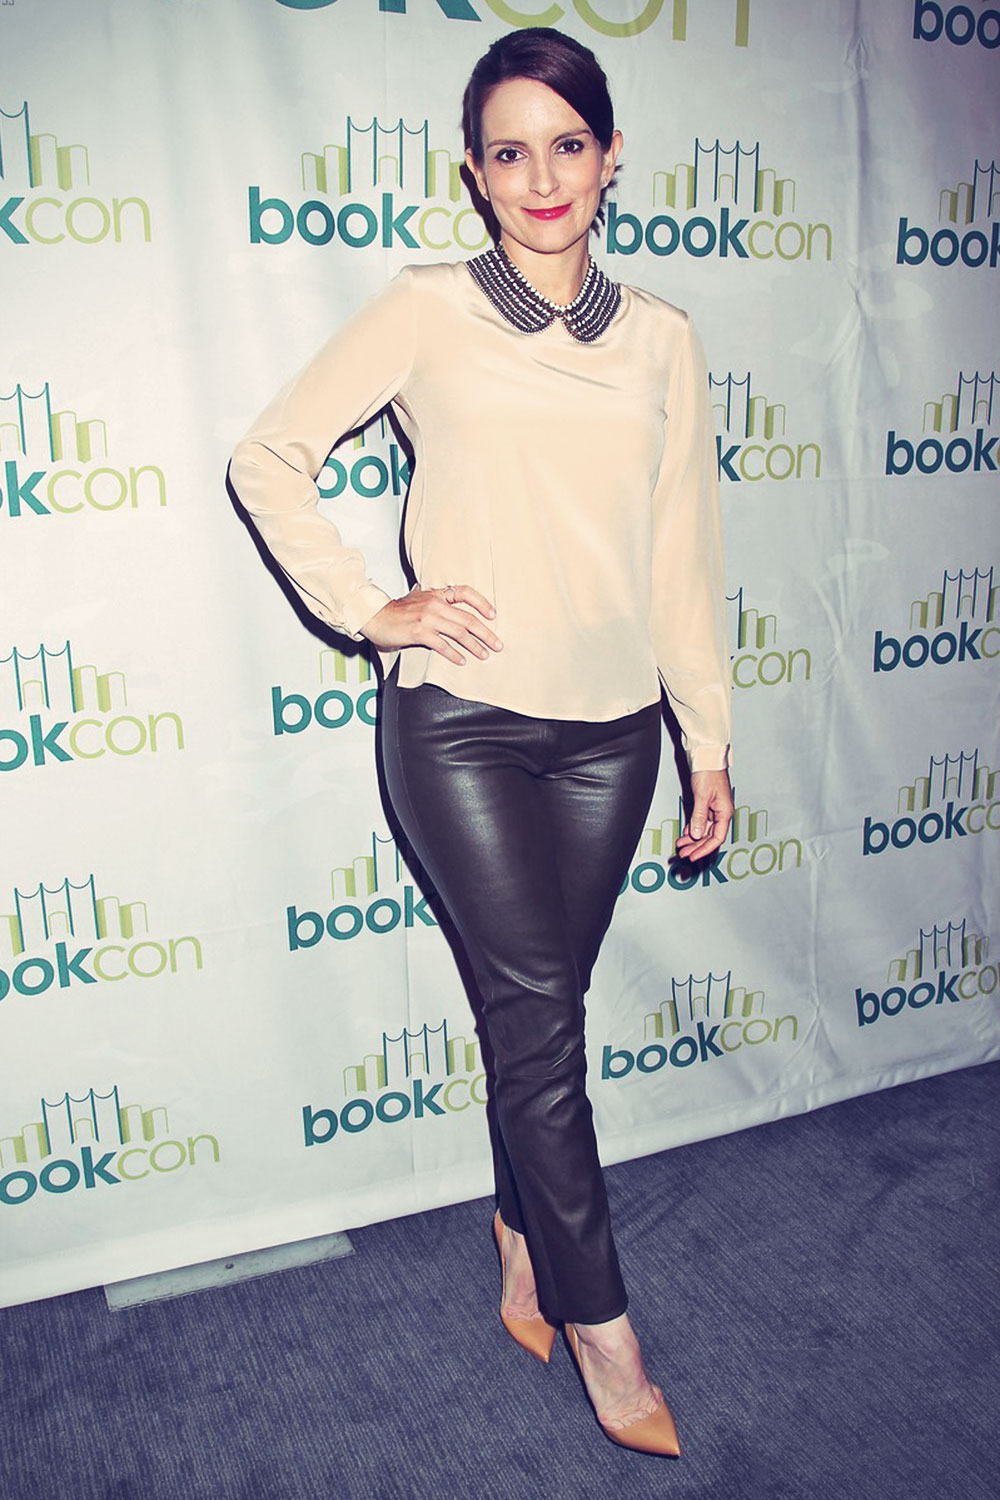 Tina Fey attends BookCon event held at the Jacob K. Javits Center